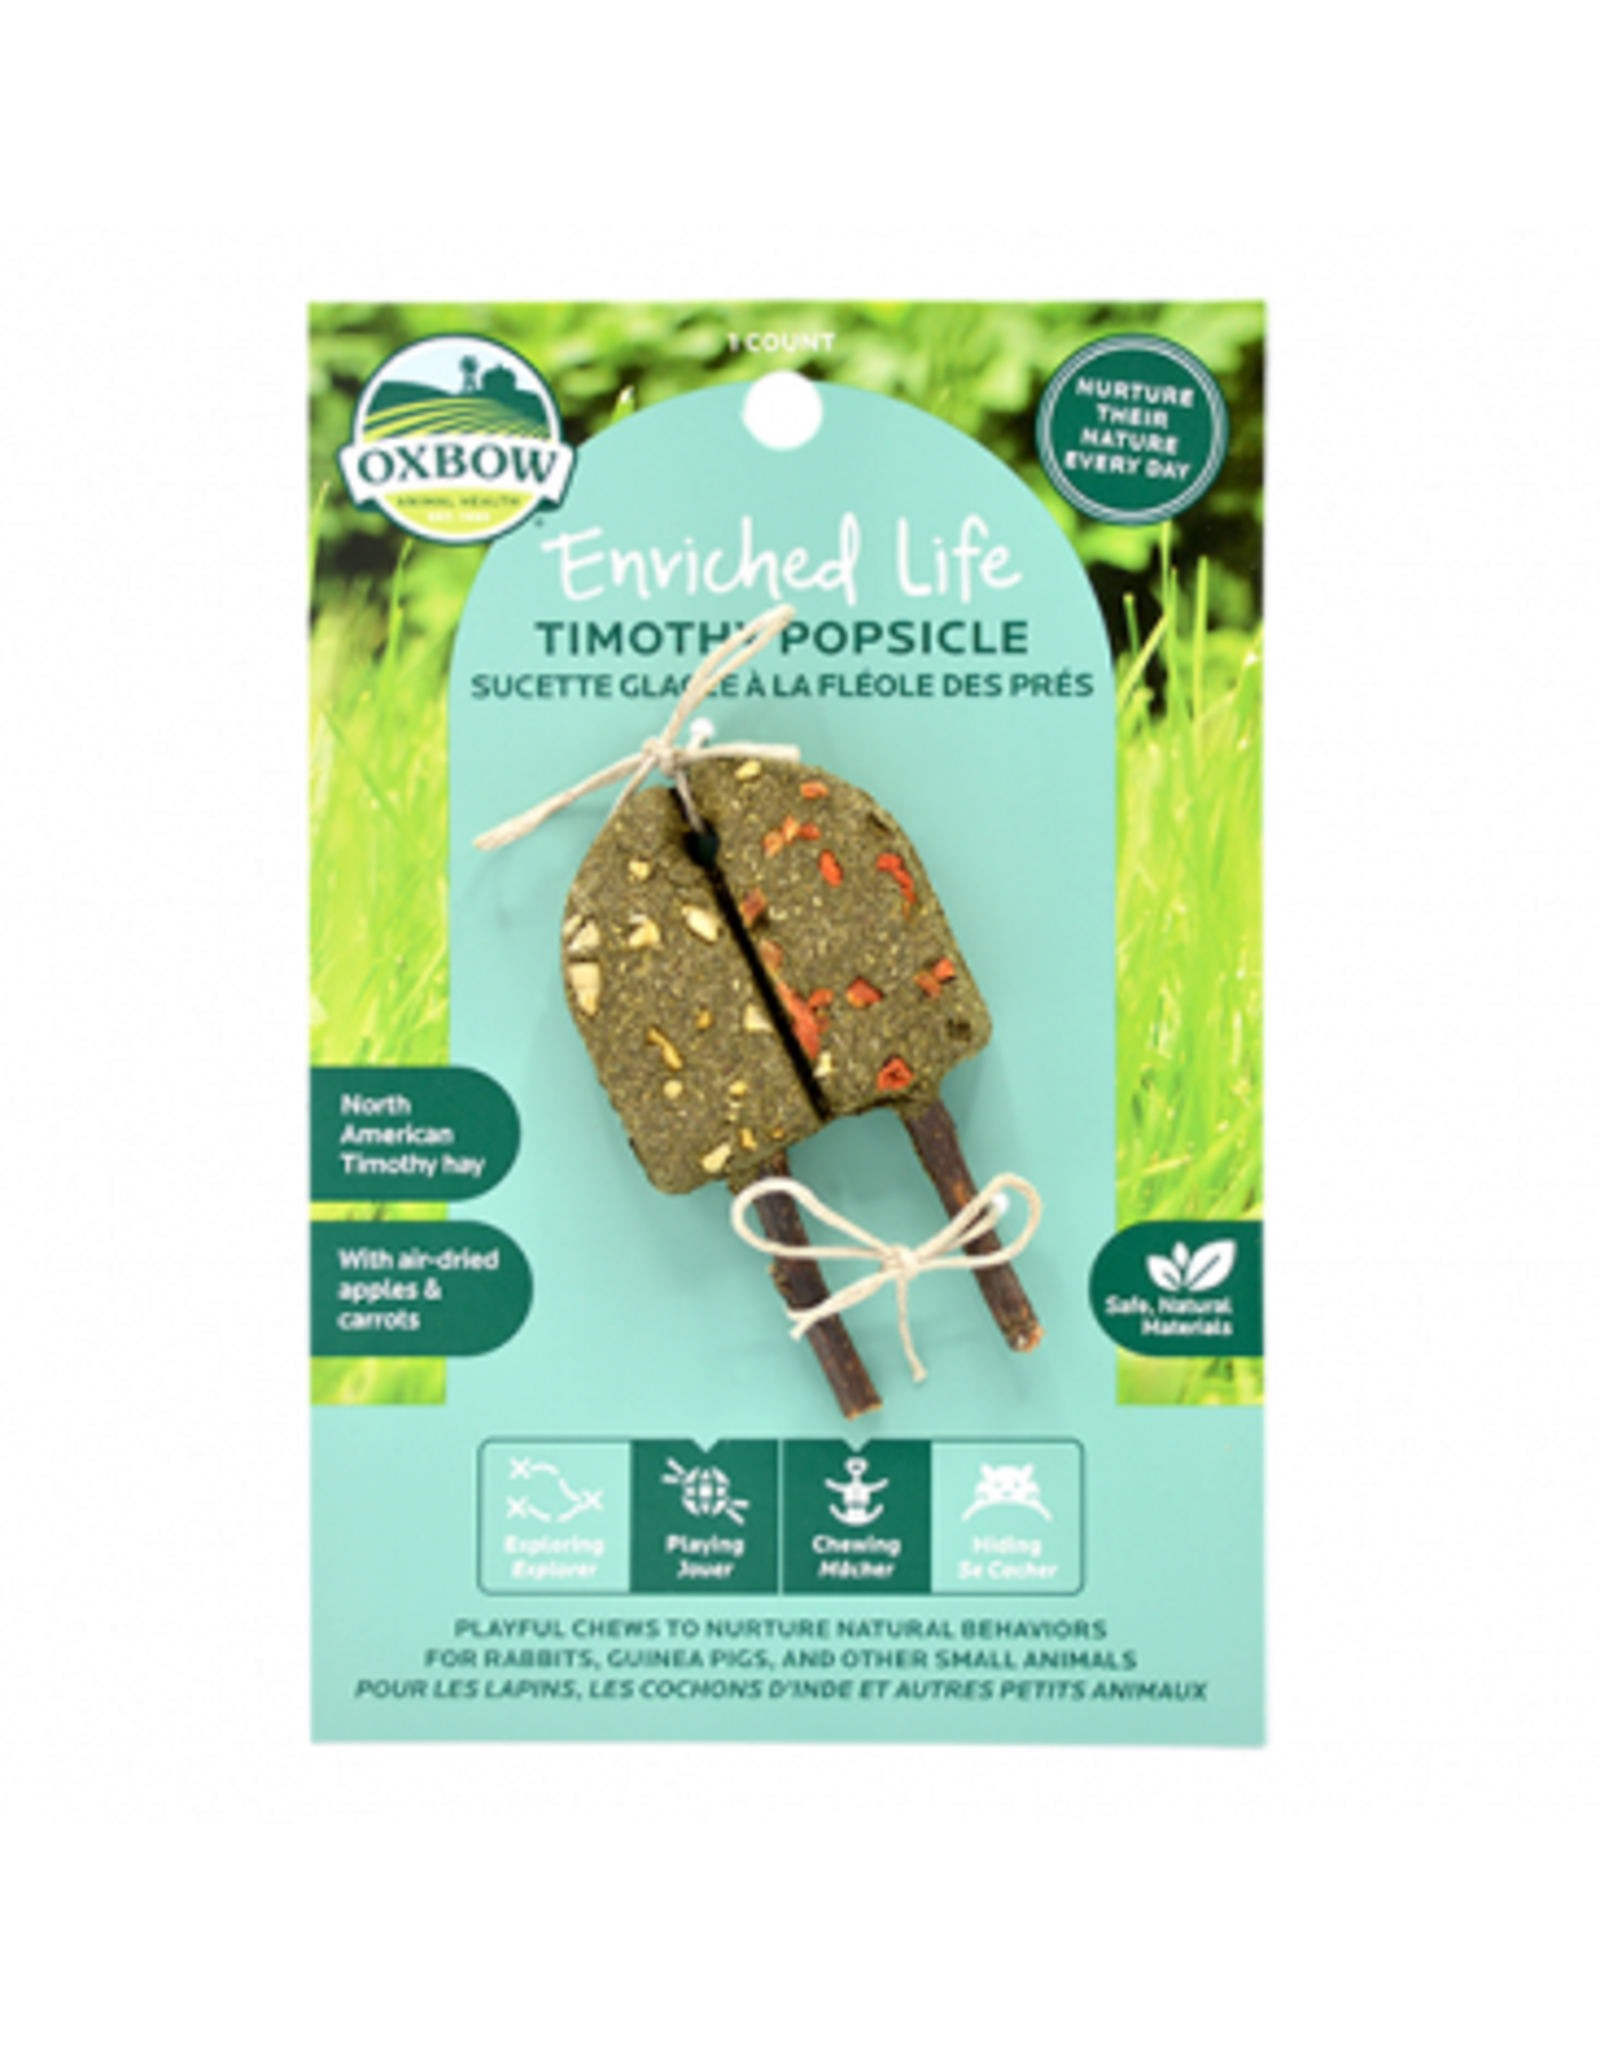 Oxbow OXBOW Enriched Life Timothy Popsicle